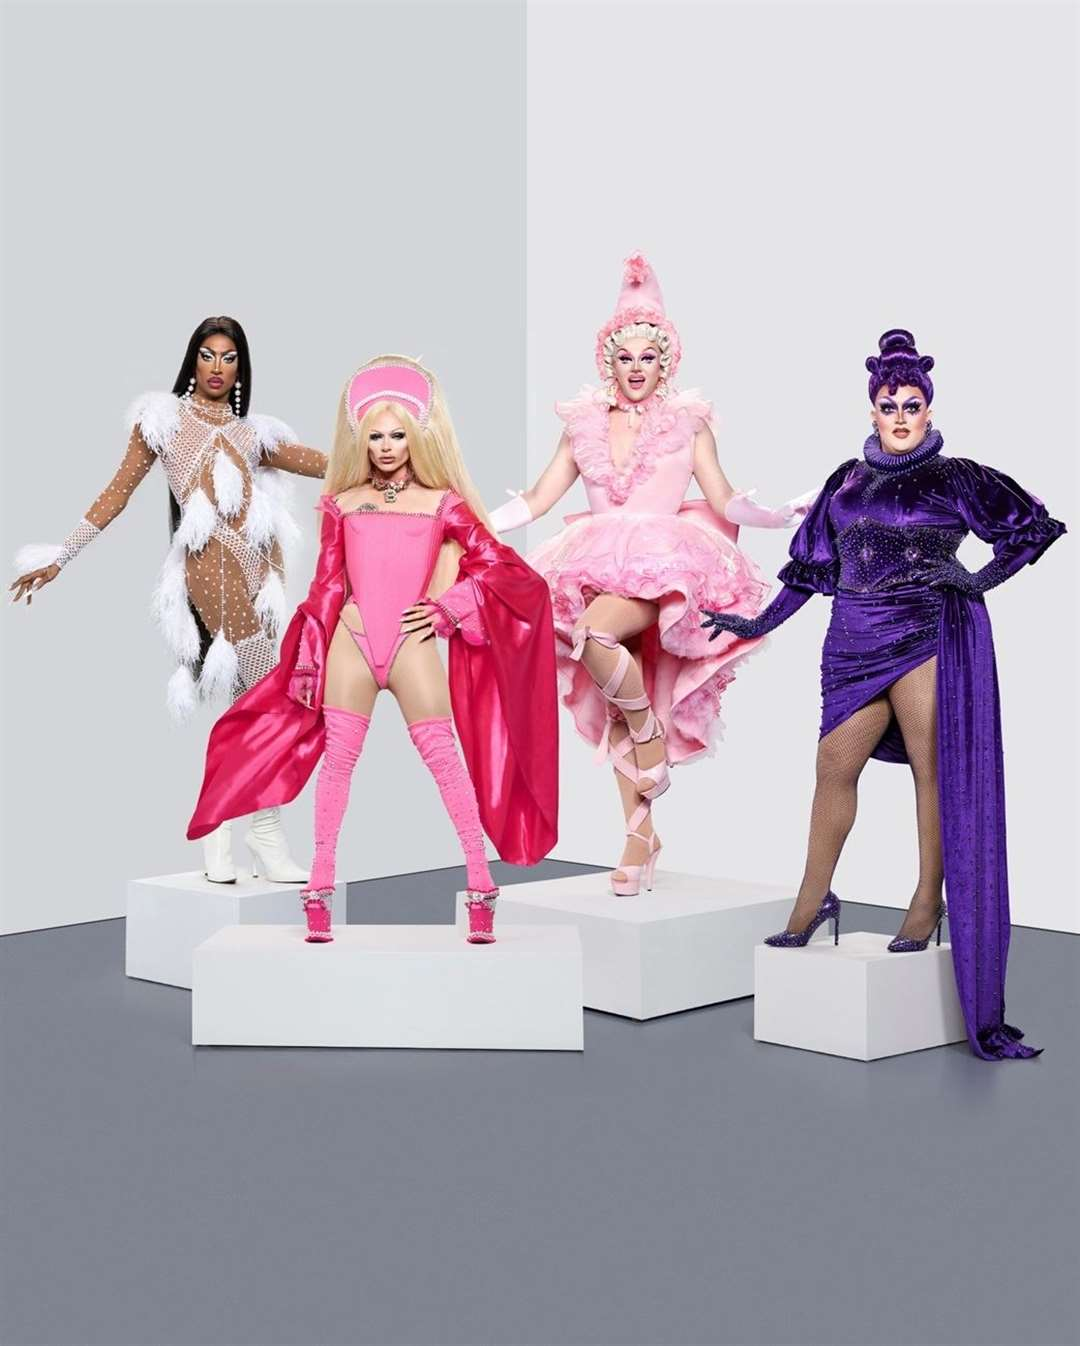 Rupaul's Drag Race is returning to the UK in 2022. (45717938)